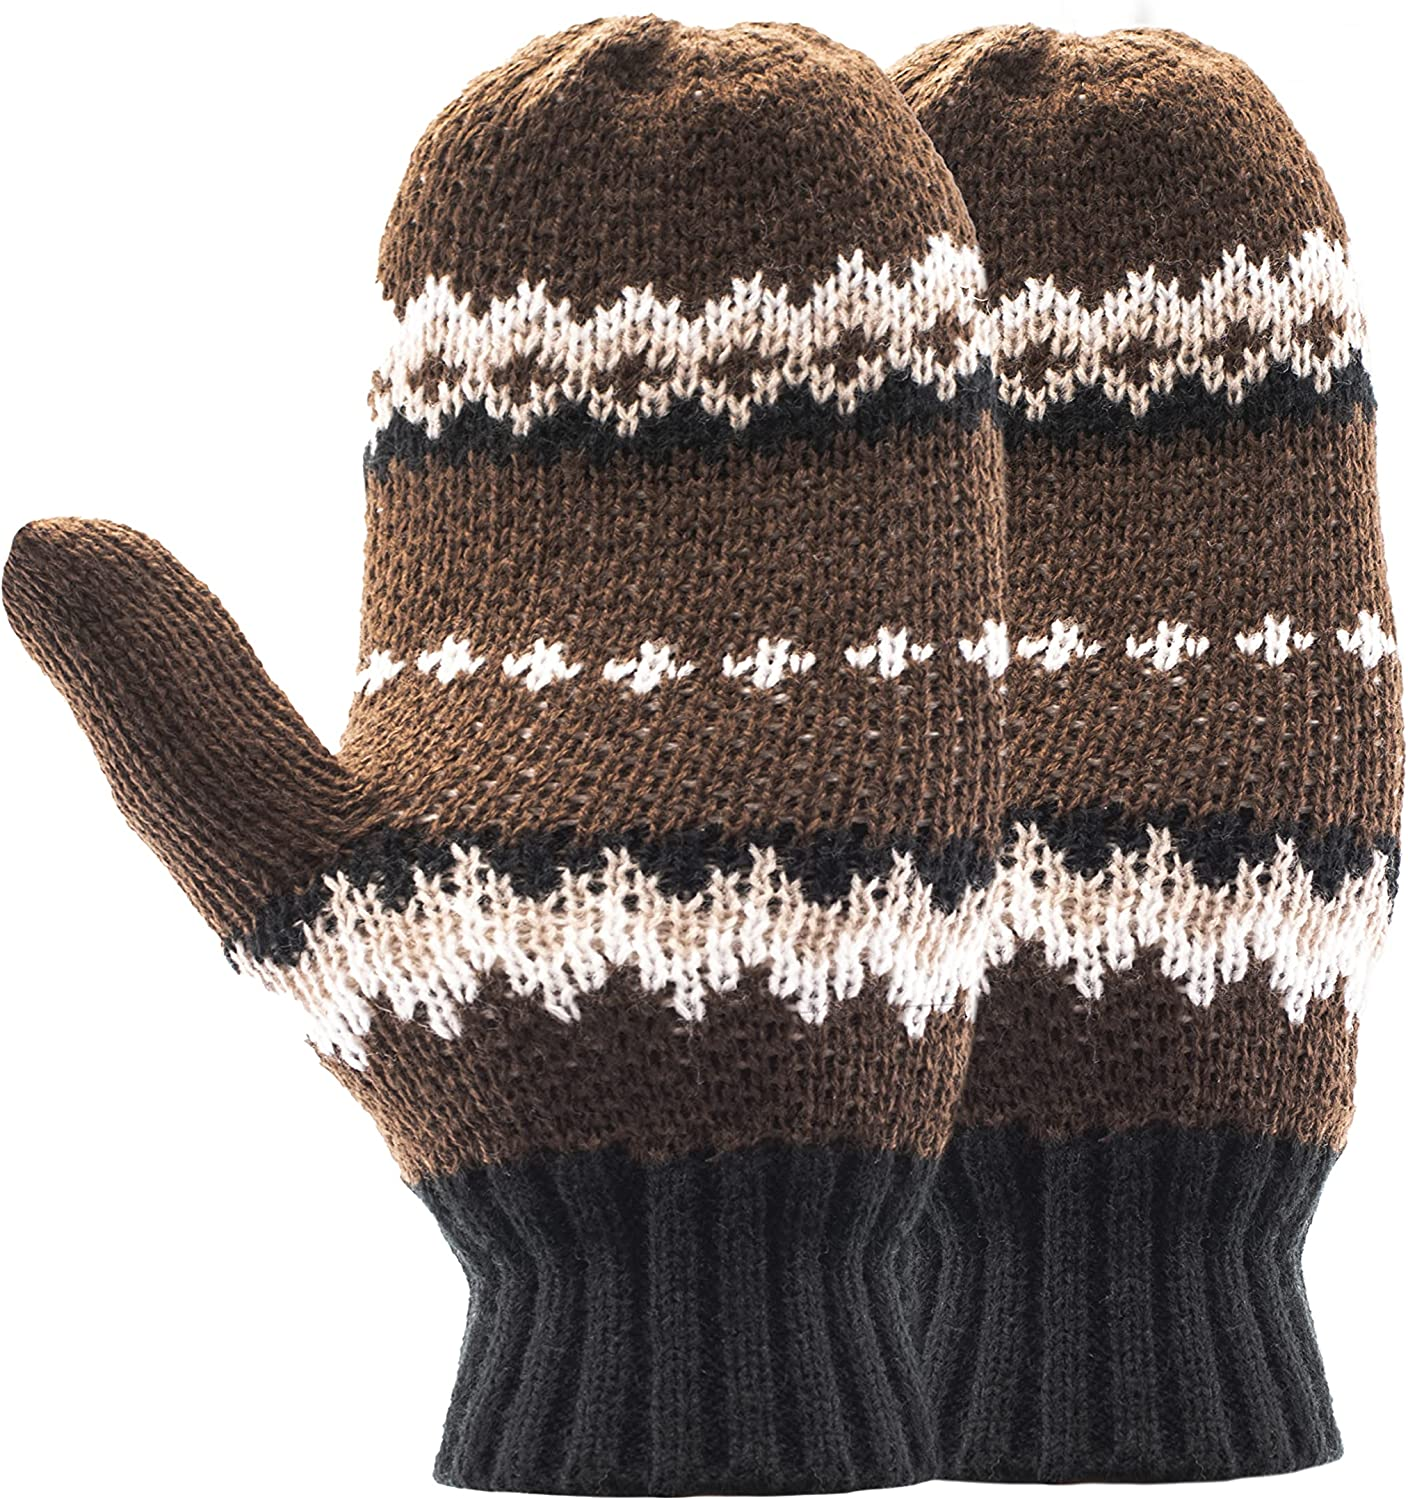 Bernie Mittens Gloves Inauguration 2021 Bernie Meme Funny Gloves Funny Mittens One Size Fits All